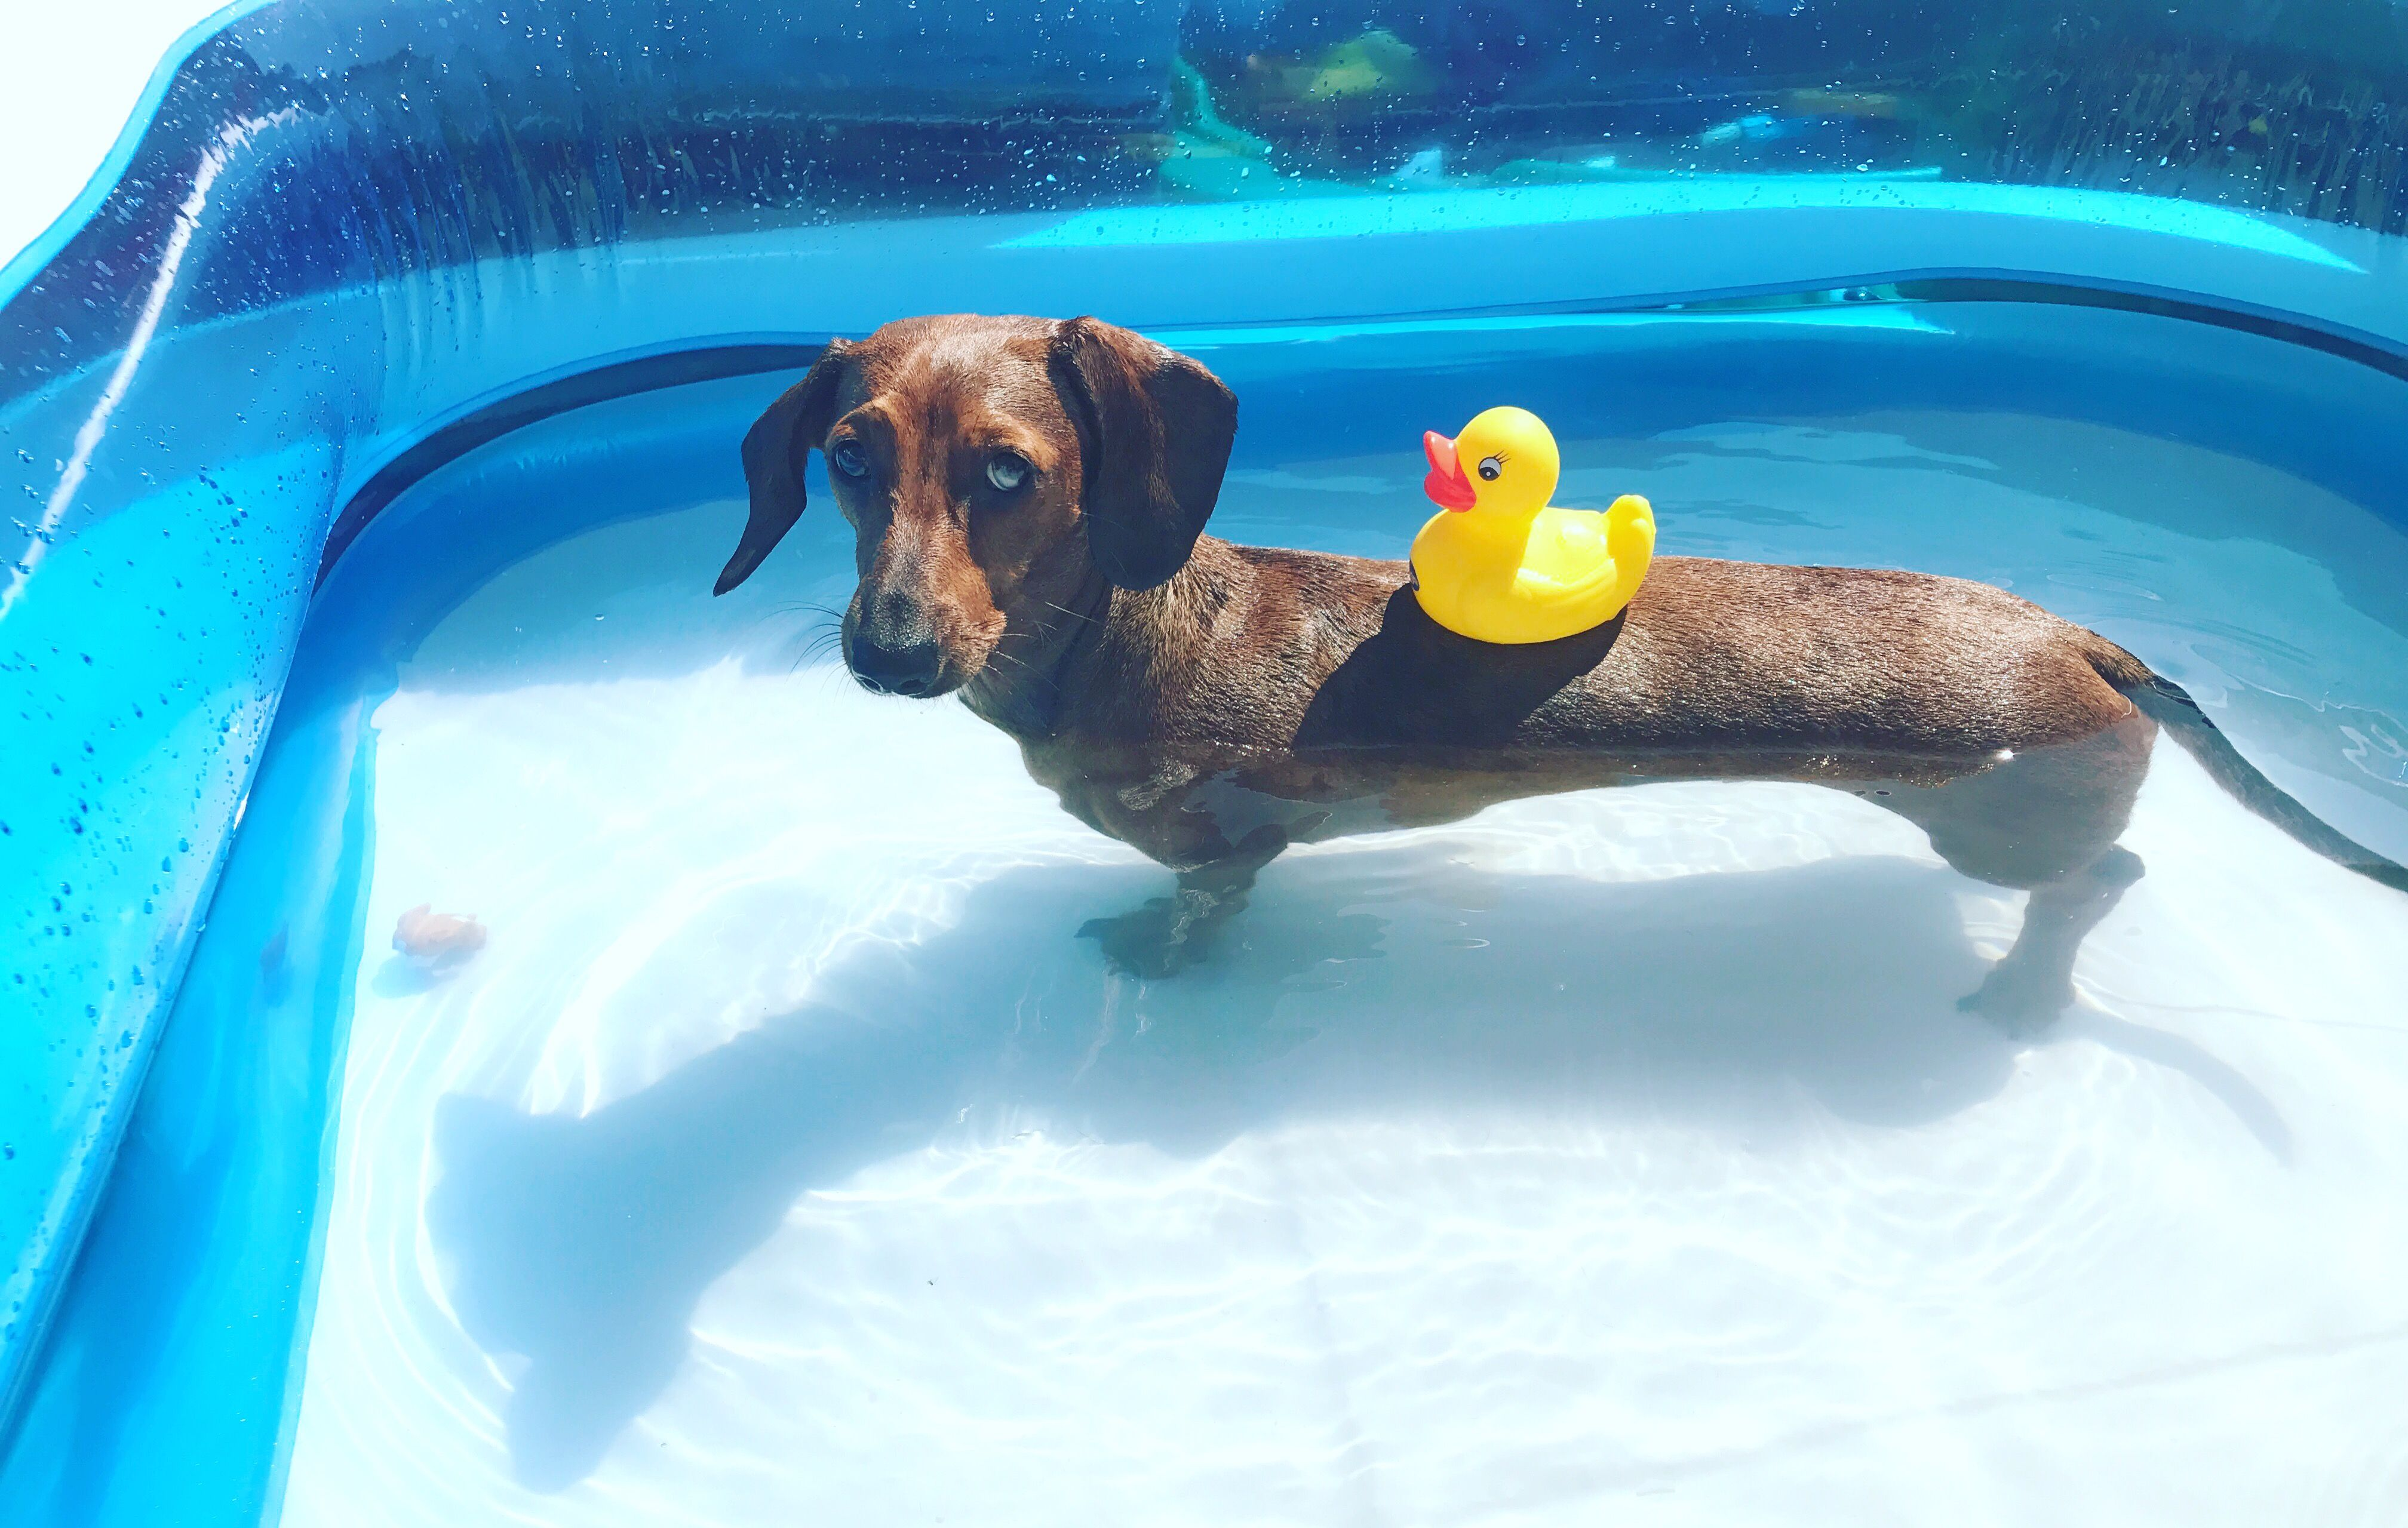 Pin By Sandy Hough On Doxies Dachshund Dog Cat Dogs